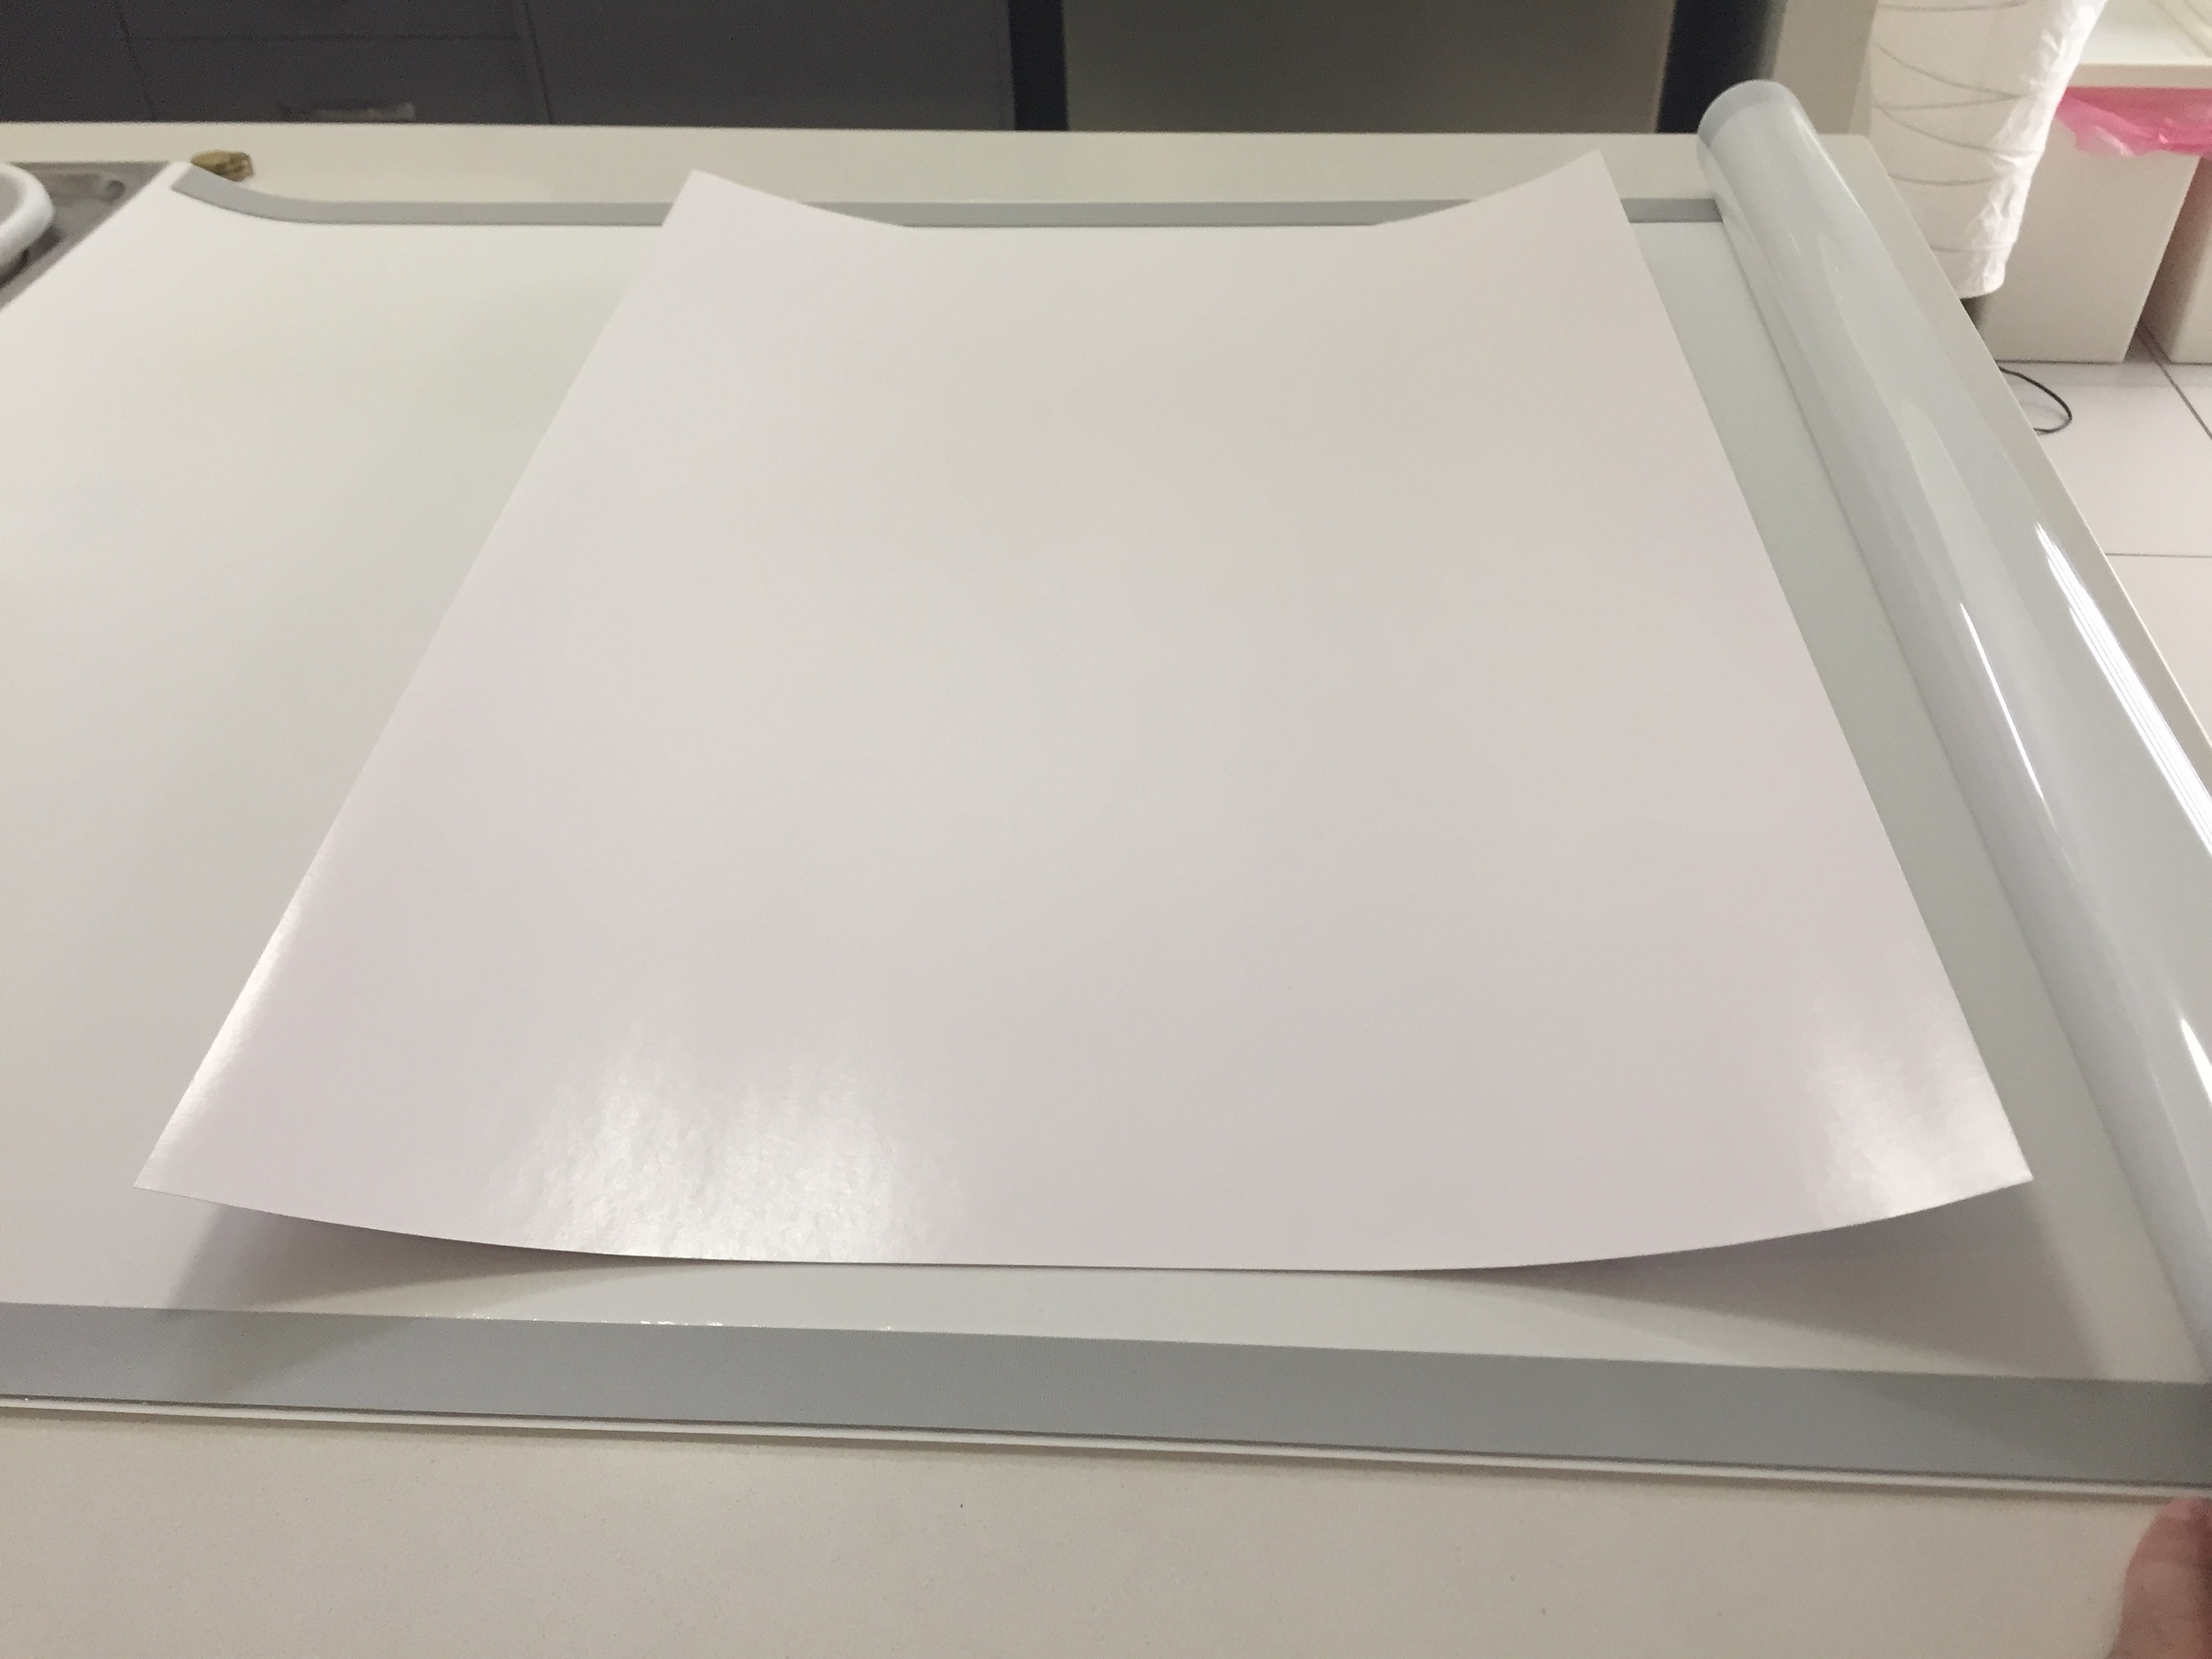 The paper, immediately after being rolled, is now visibly very flat